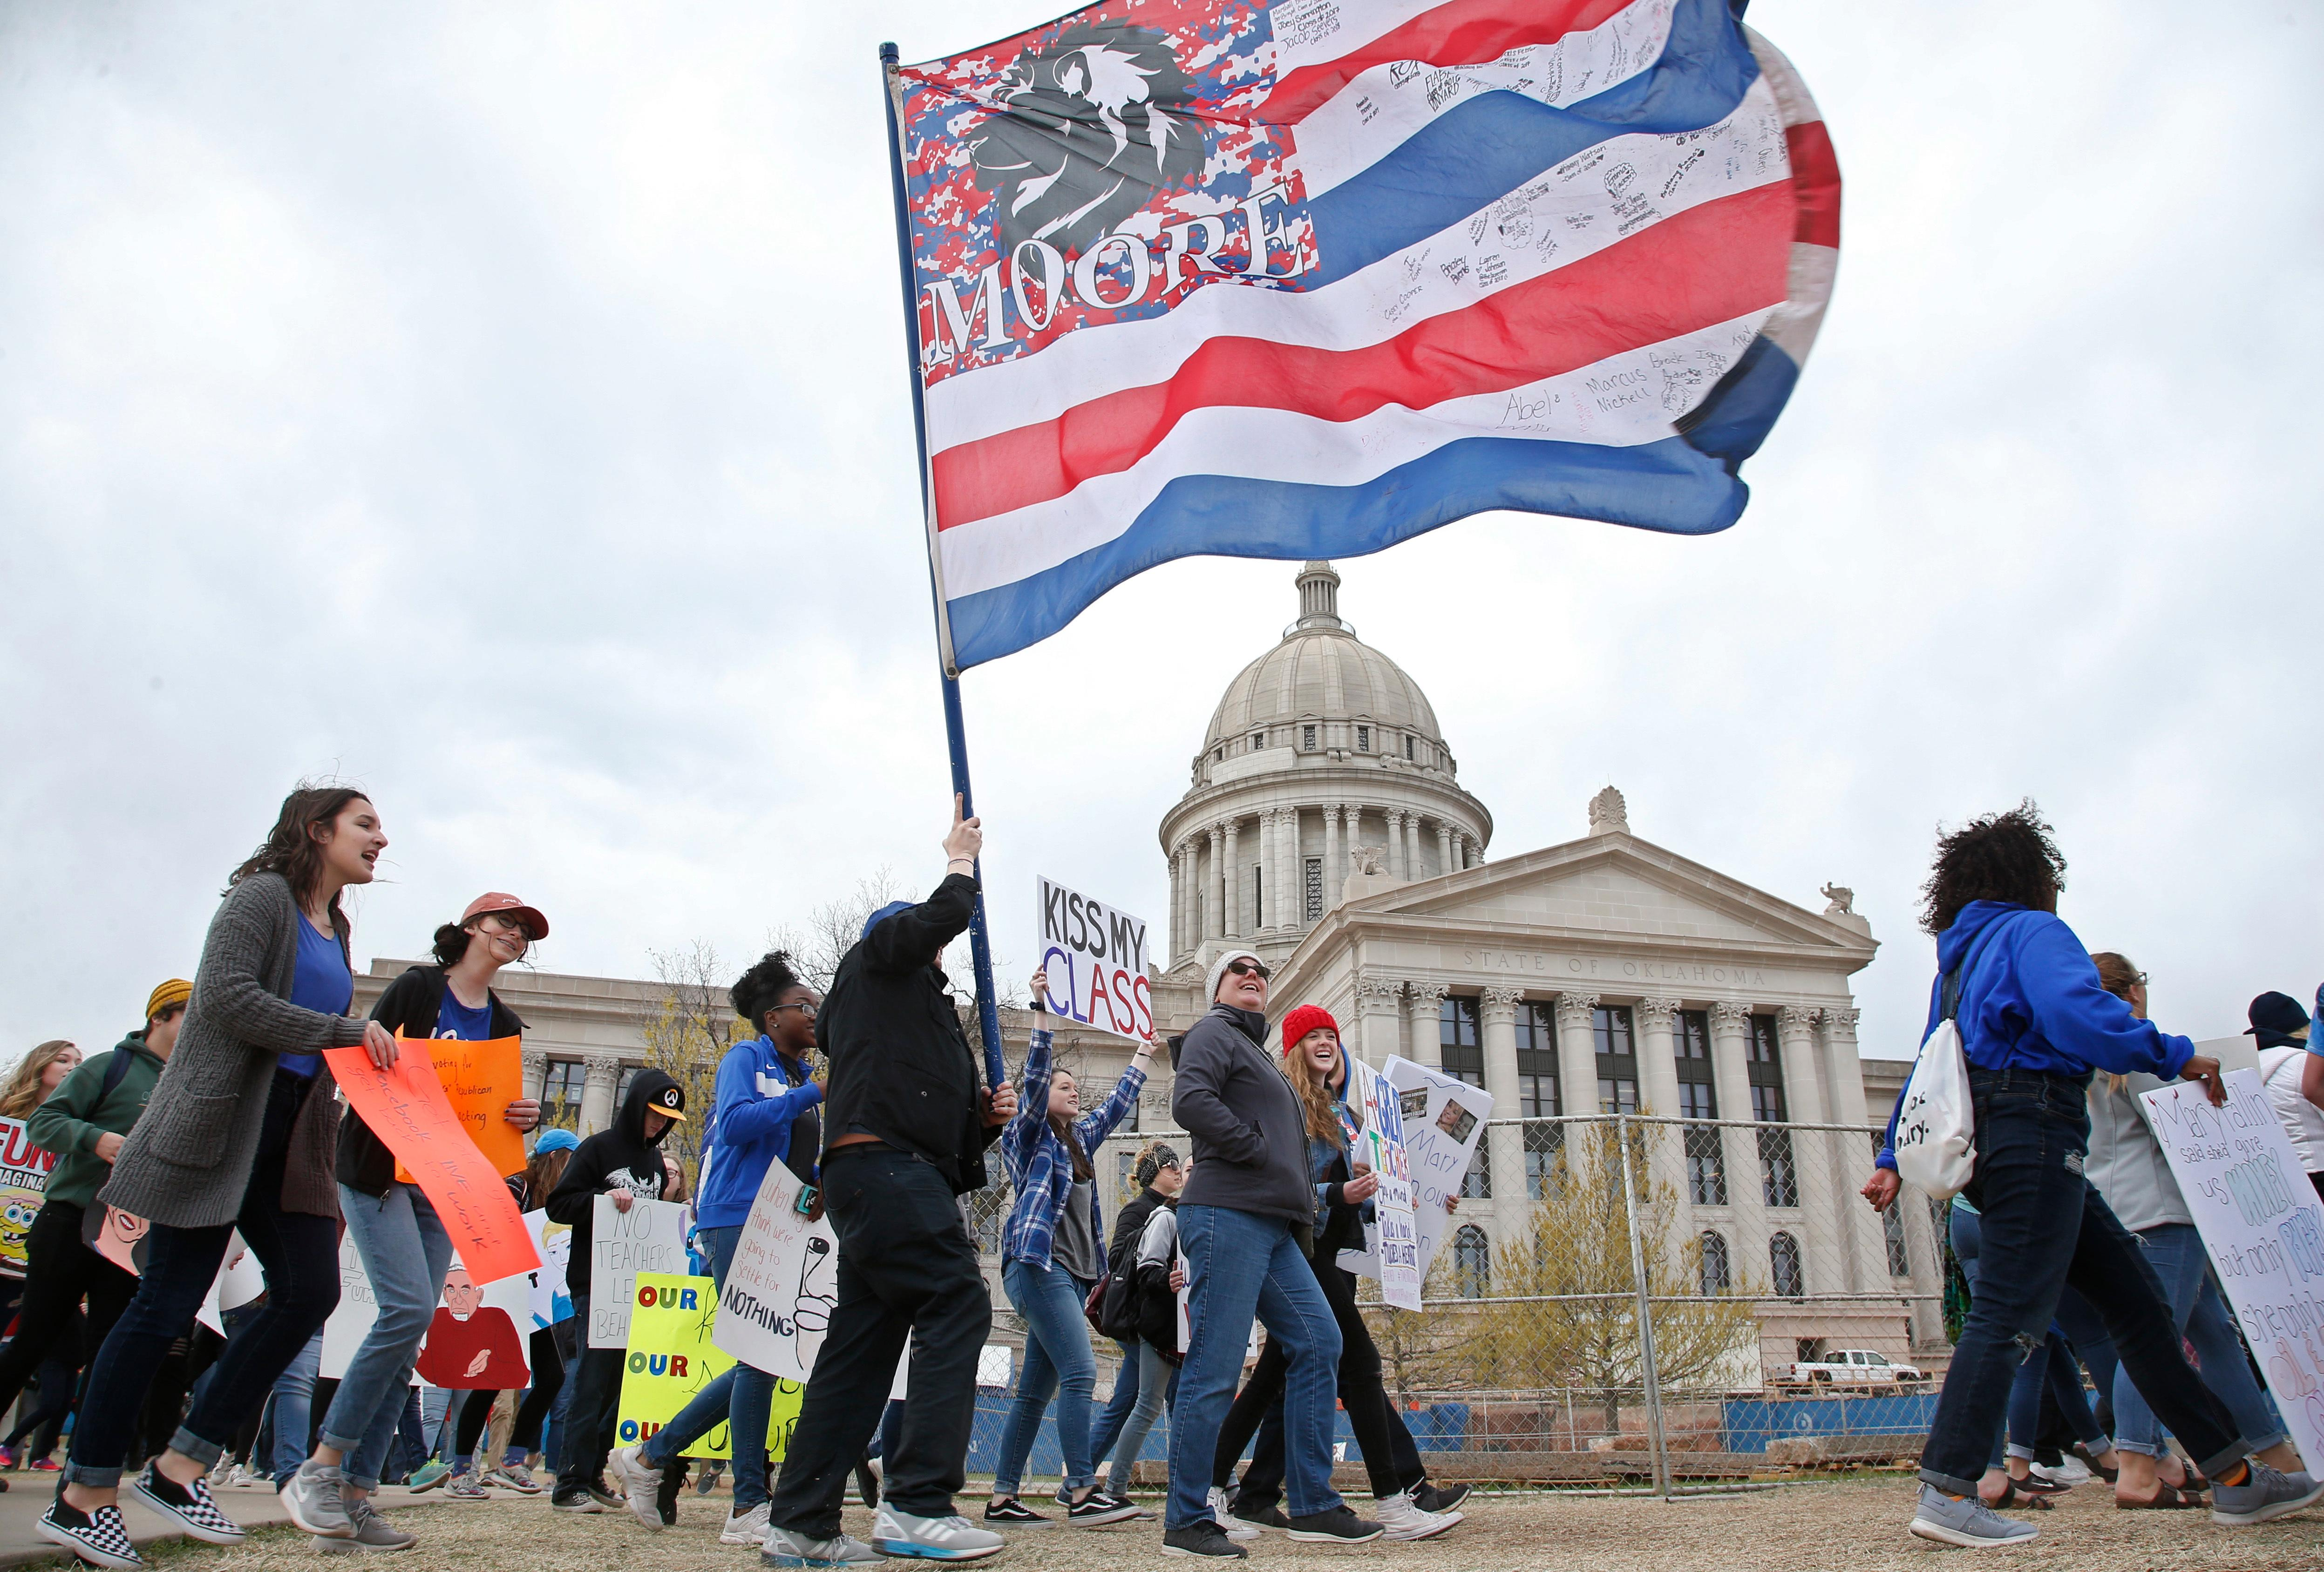 Students march around the state Capitol on the fourth day of protests over school funding, in Oklahoma City, Thursday, April 5, 2018. (AP Photo/Sue Ogrocki)